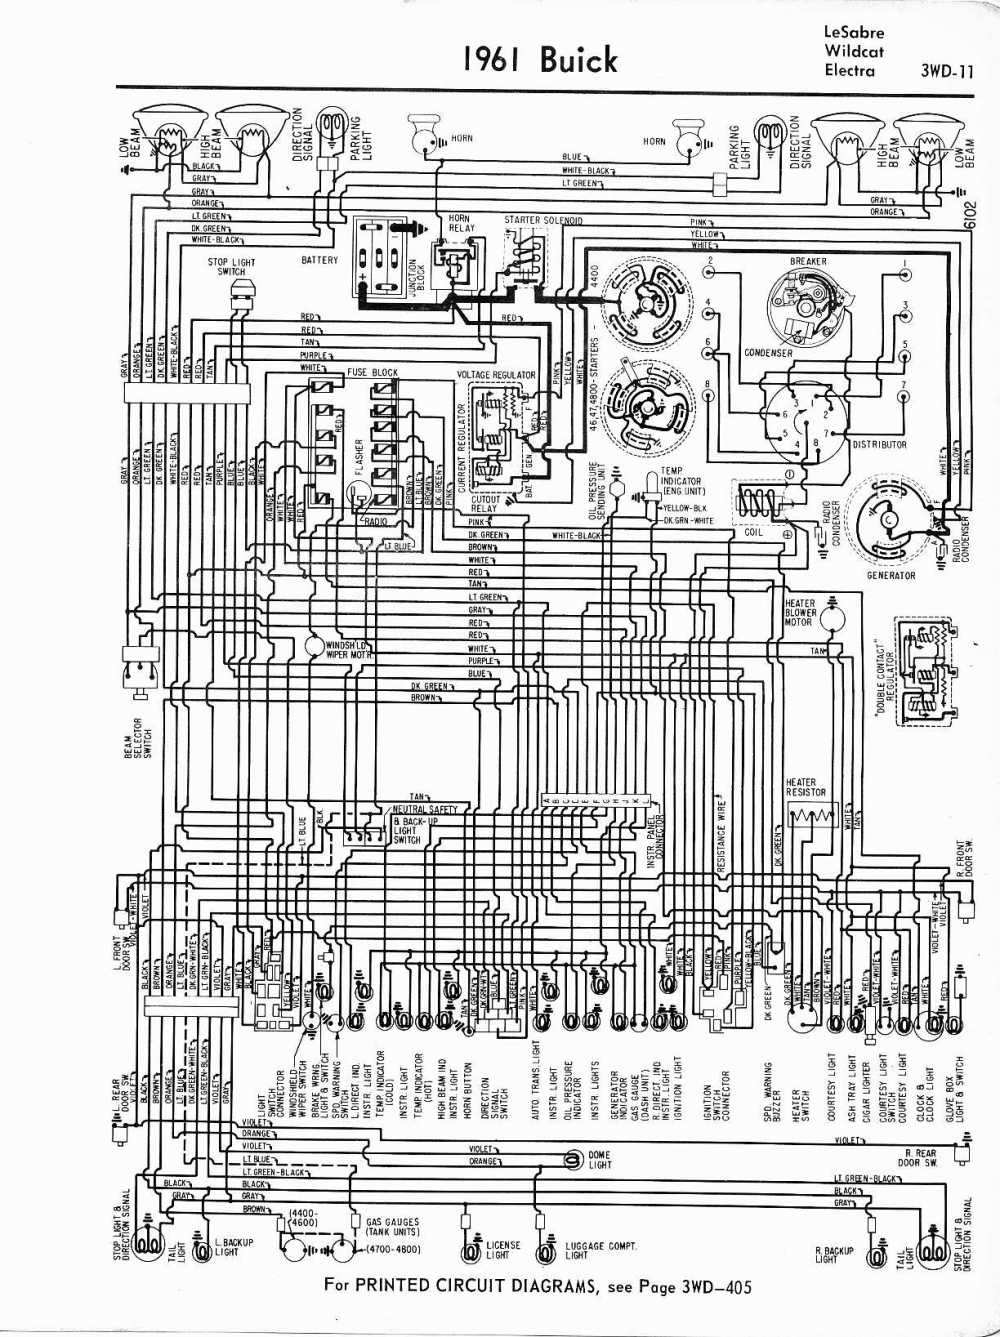 medium resolution of wiring diagram for 2002 buick lesabre wiring diagrams valuewiring diagram for buick lesabre wiring diagram inside